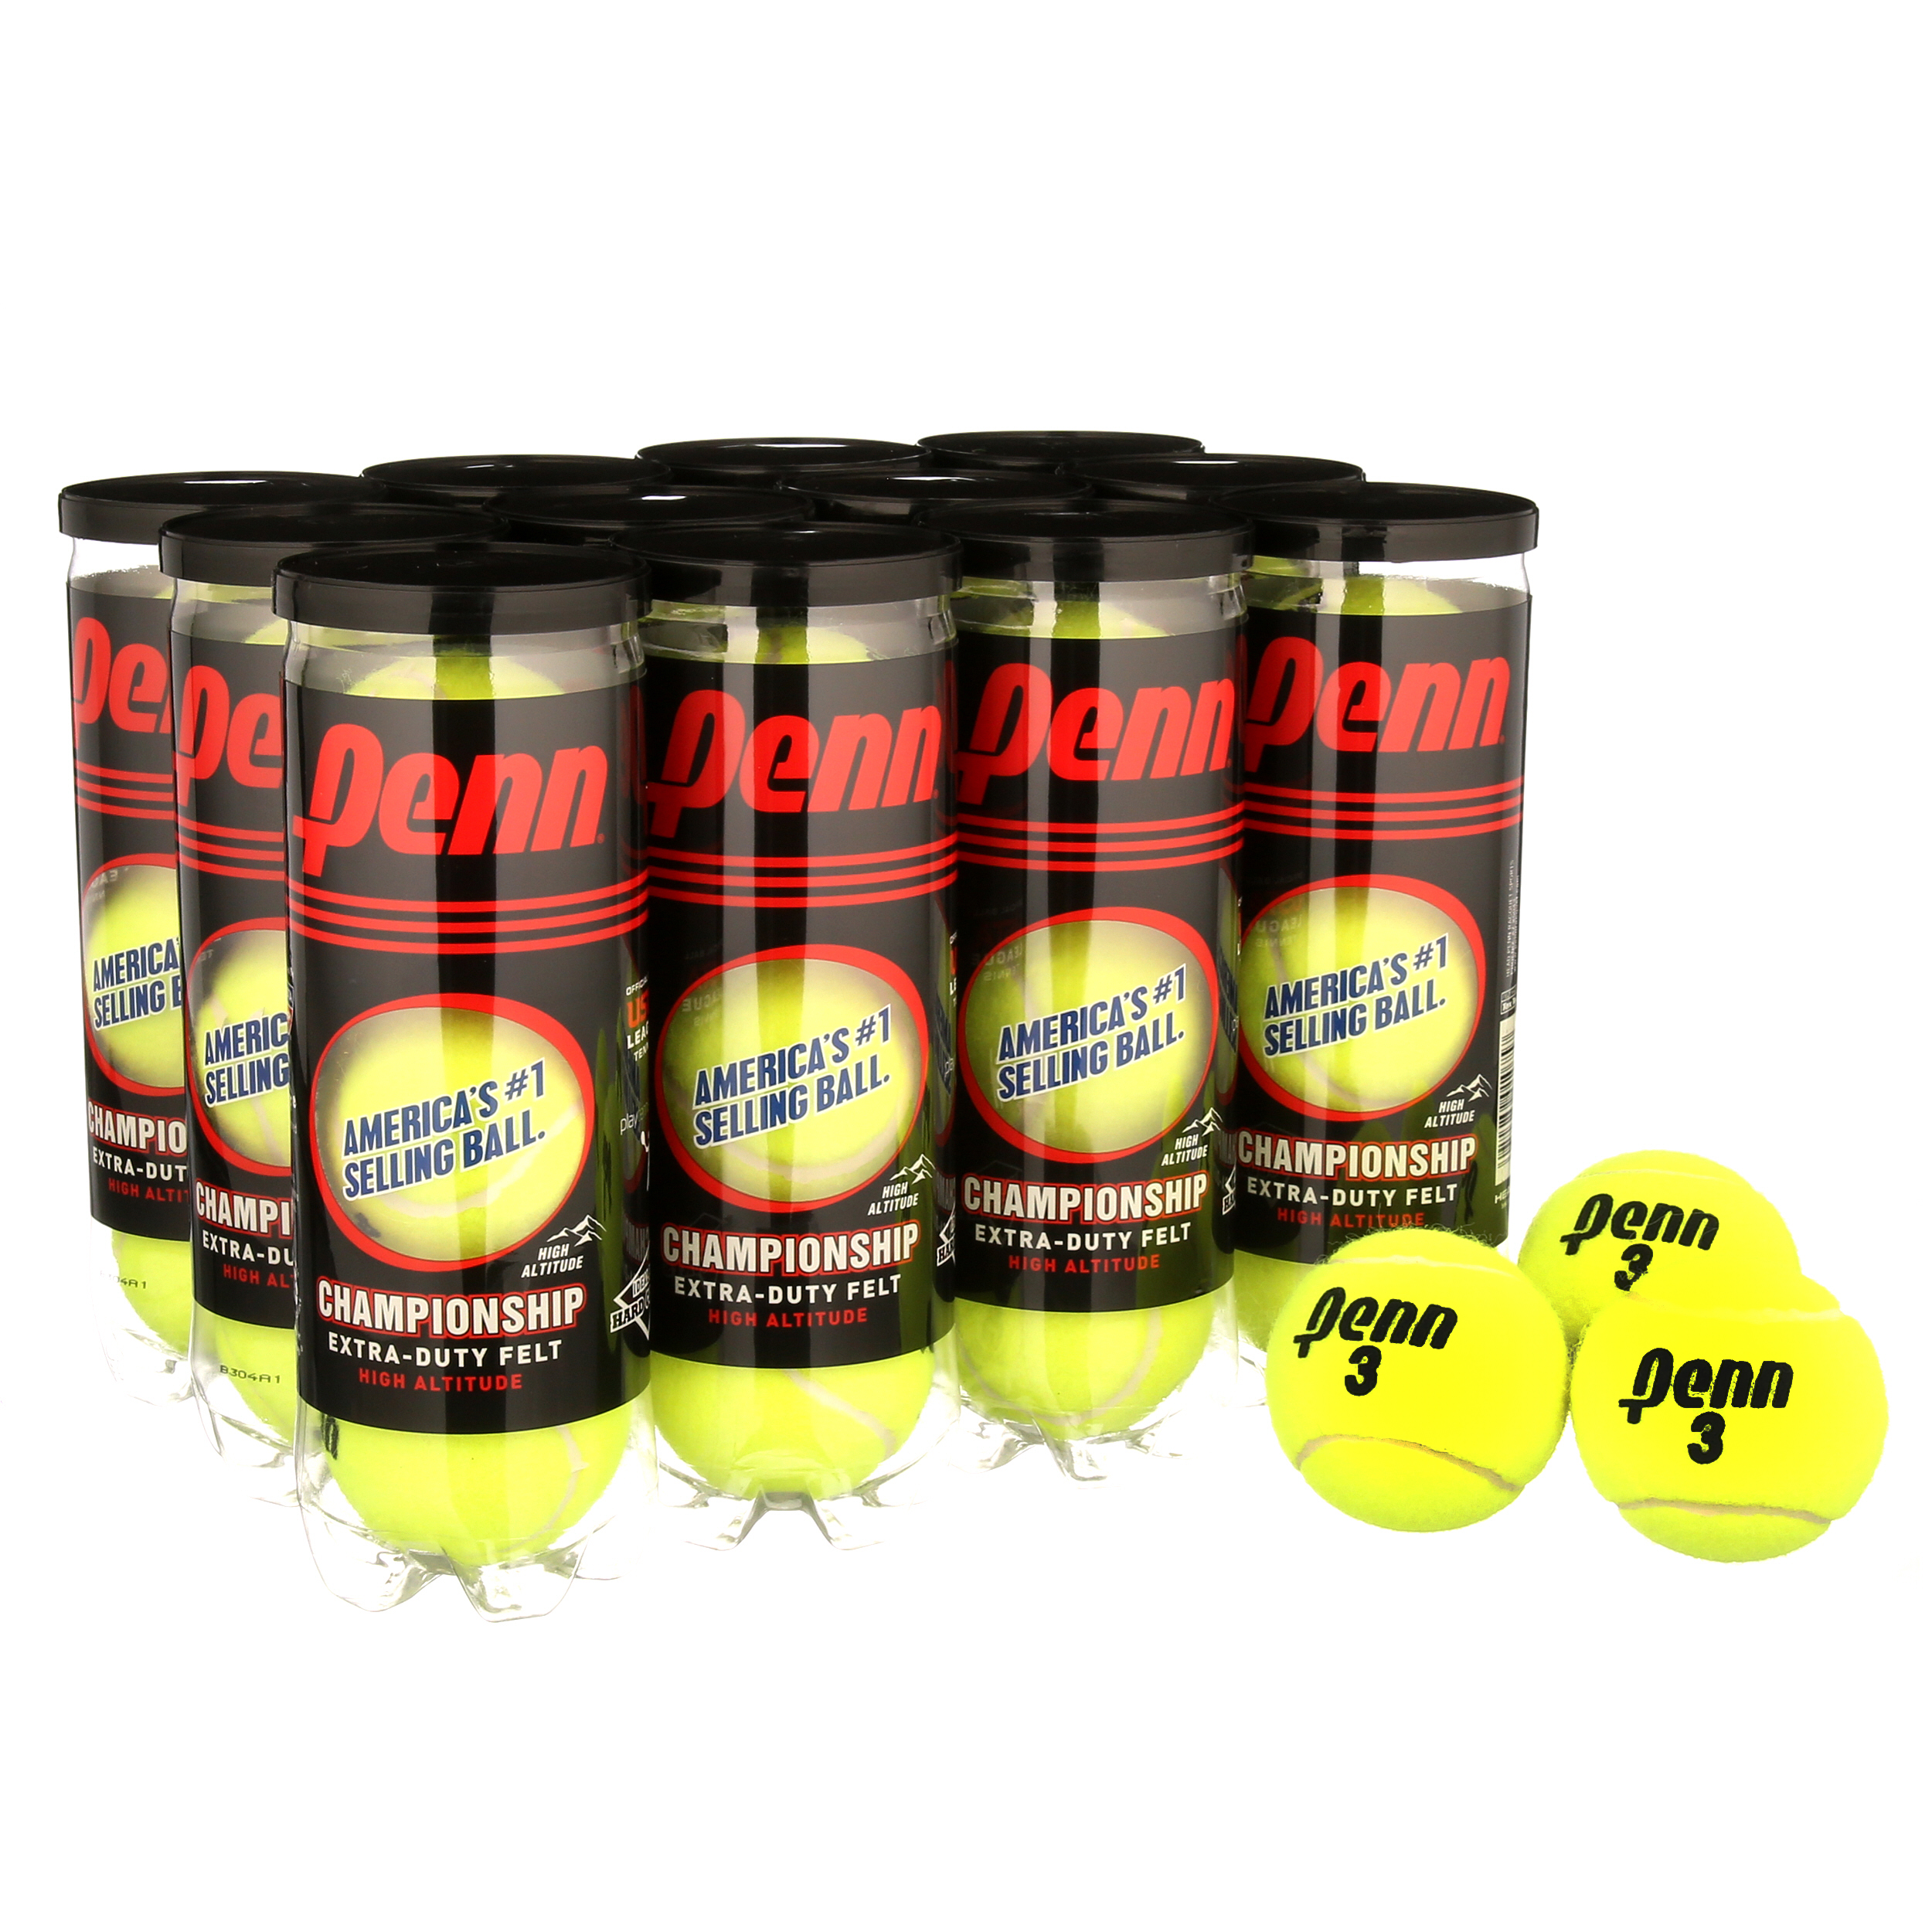 3 Count per Can Penn Championship Extra-Duty Felt Tennis Balls Can